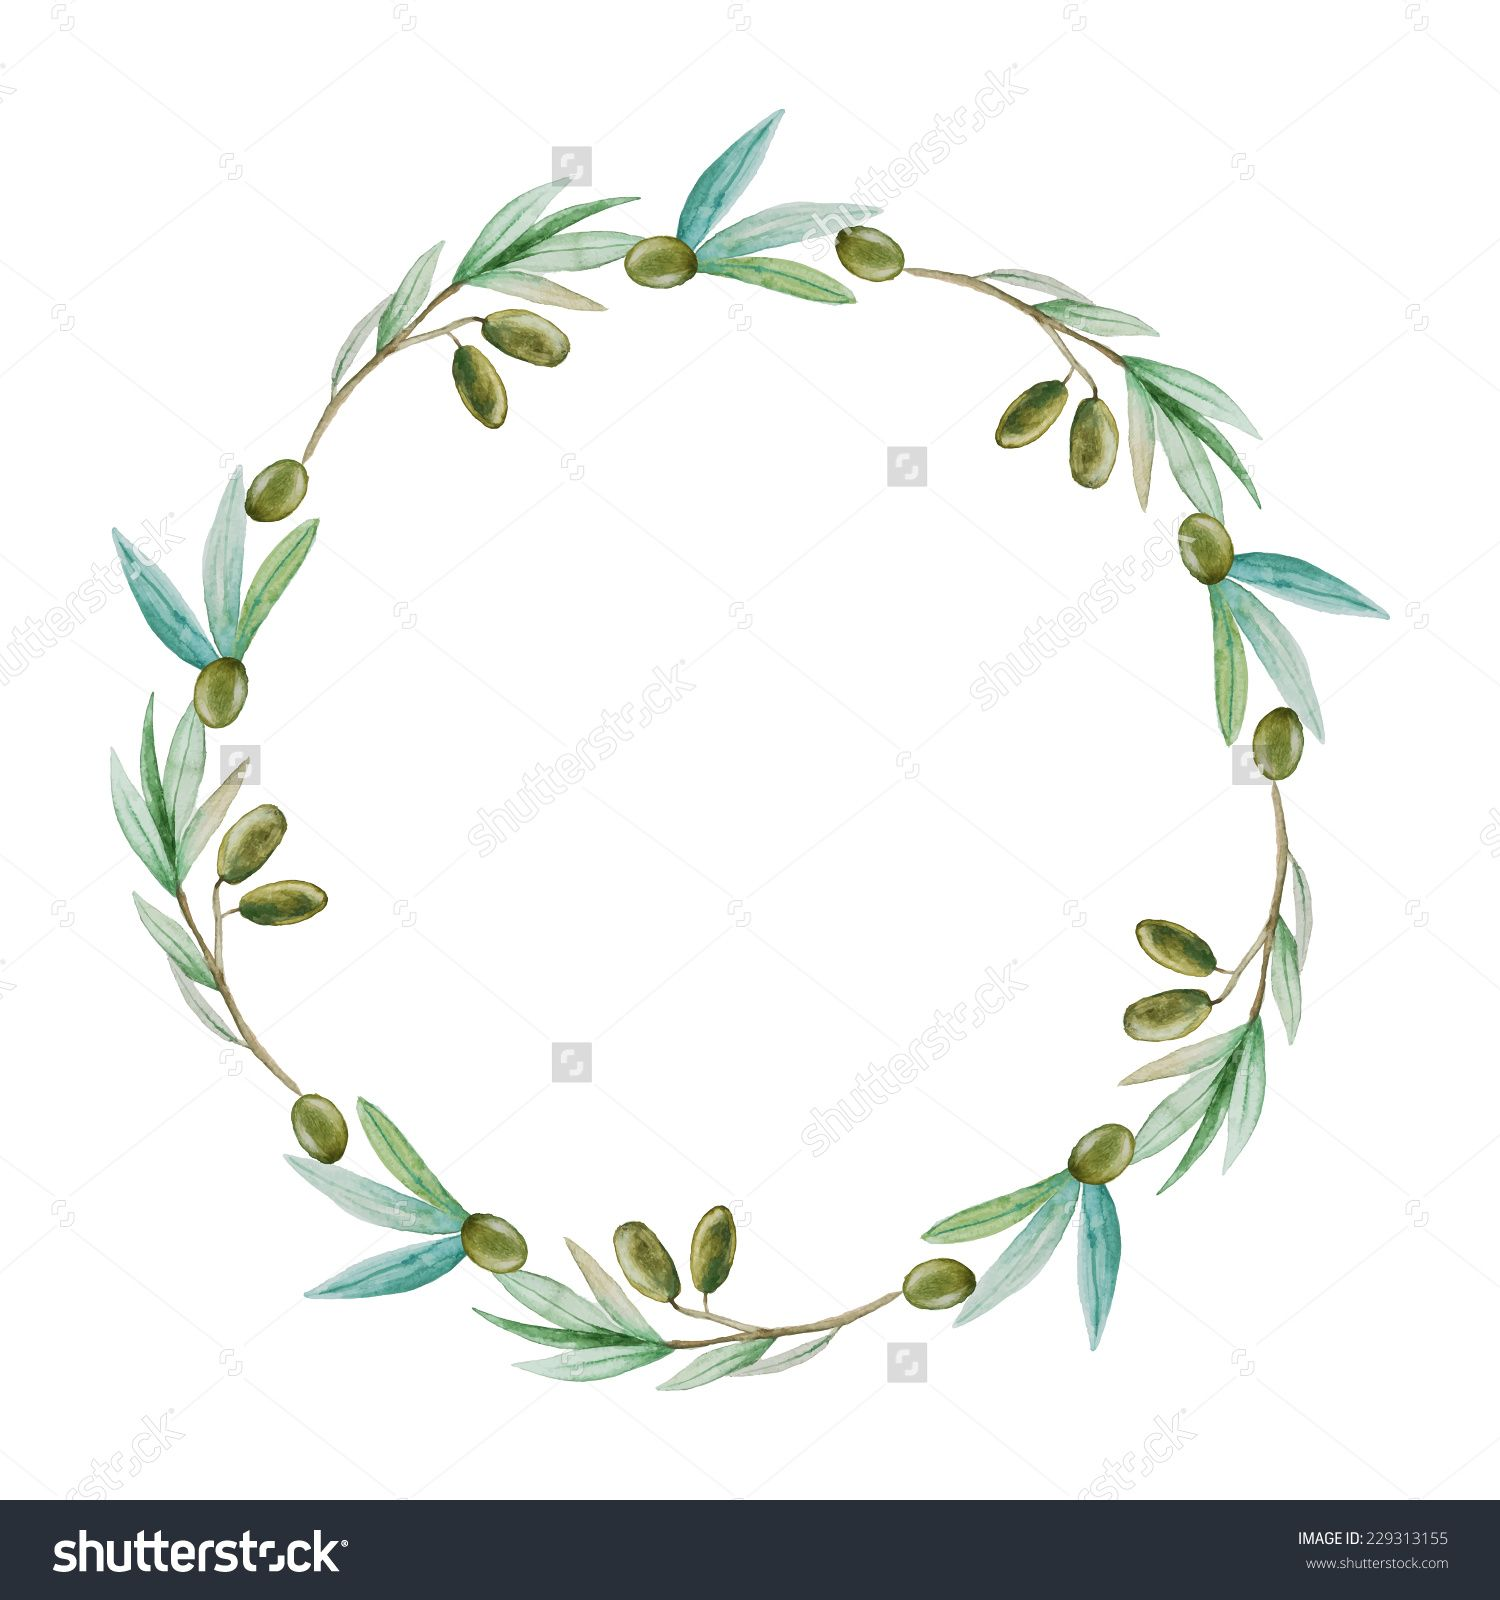 Watercolor Olive Branch Wreath Hand Drawn Natural Vector Frame